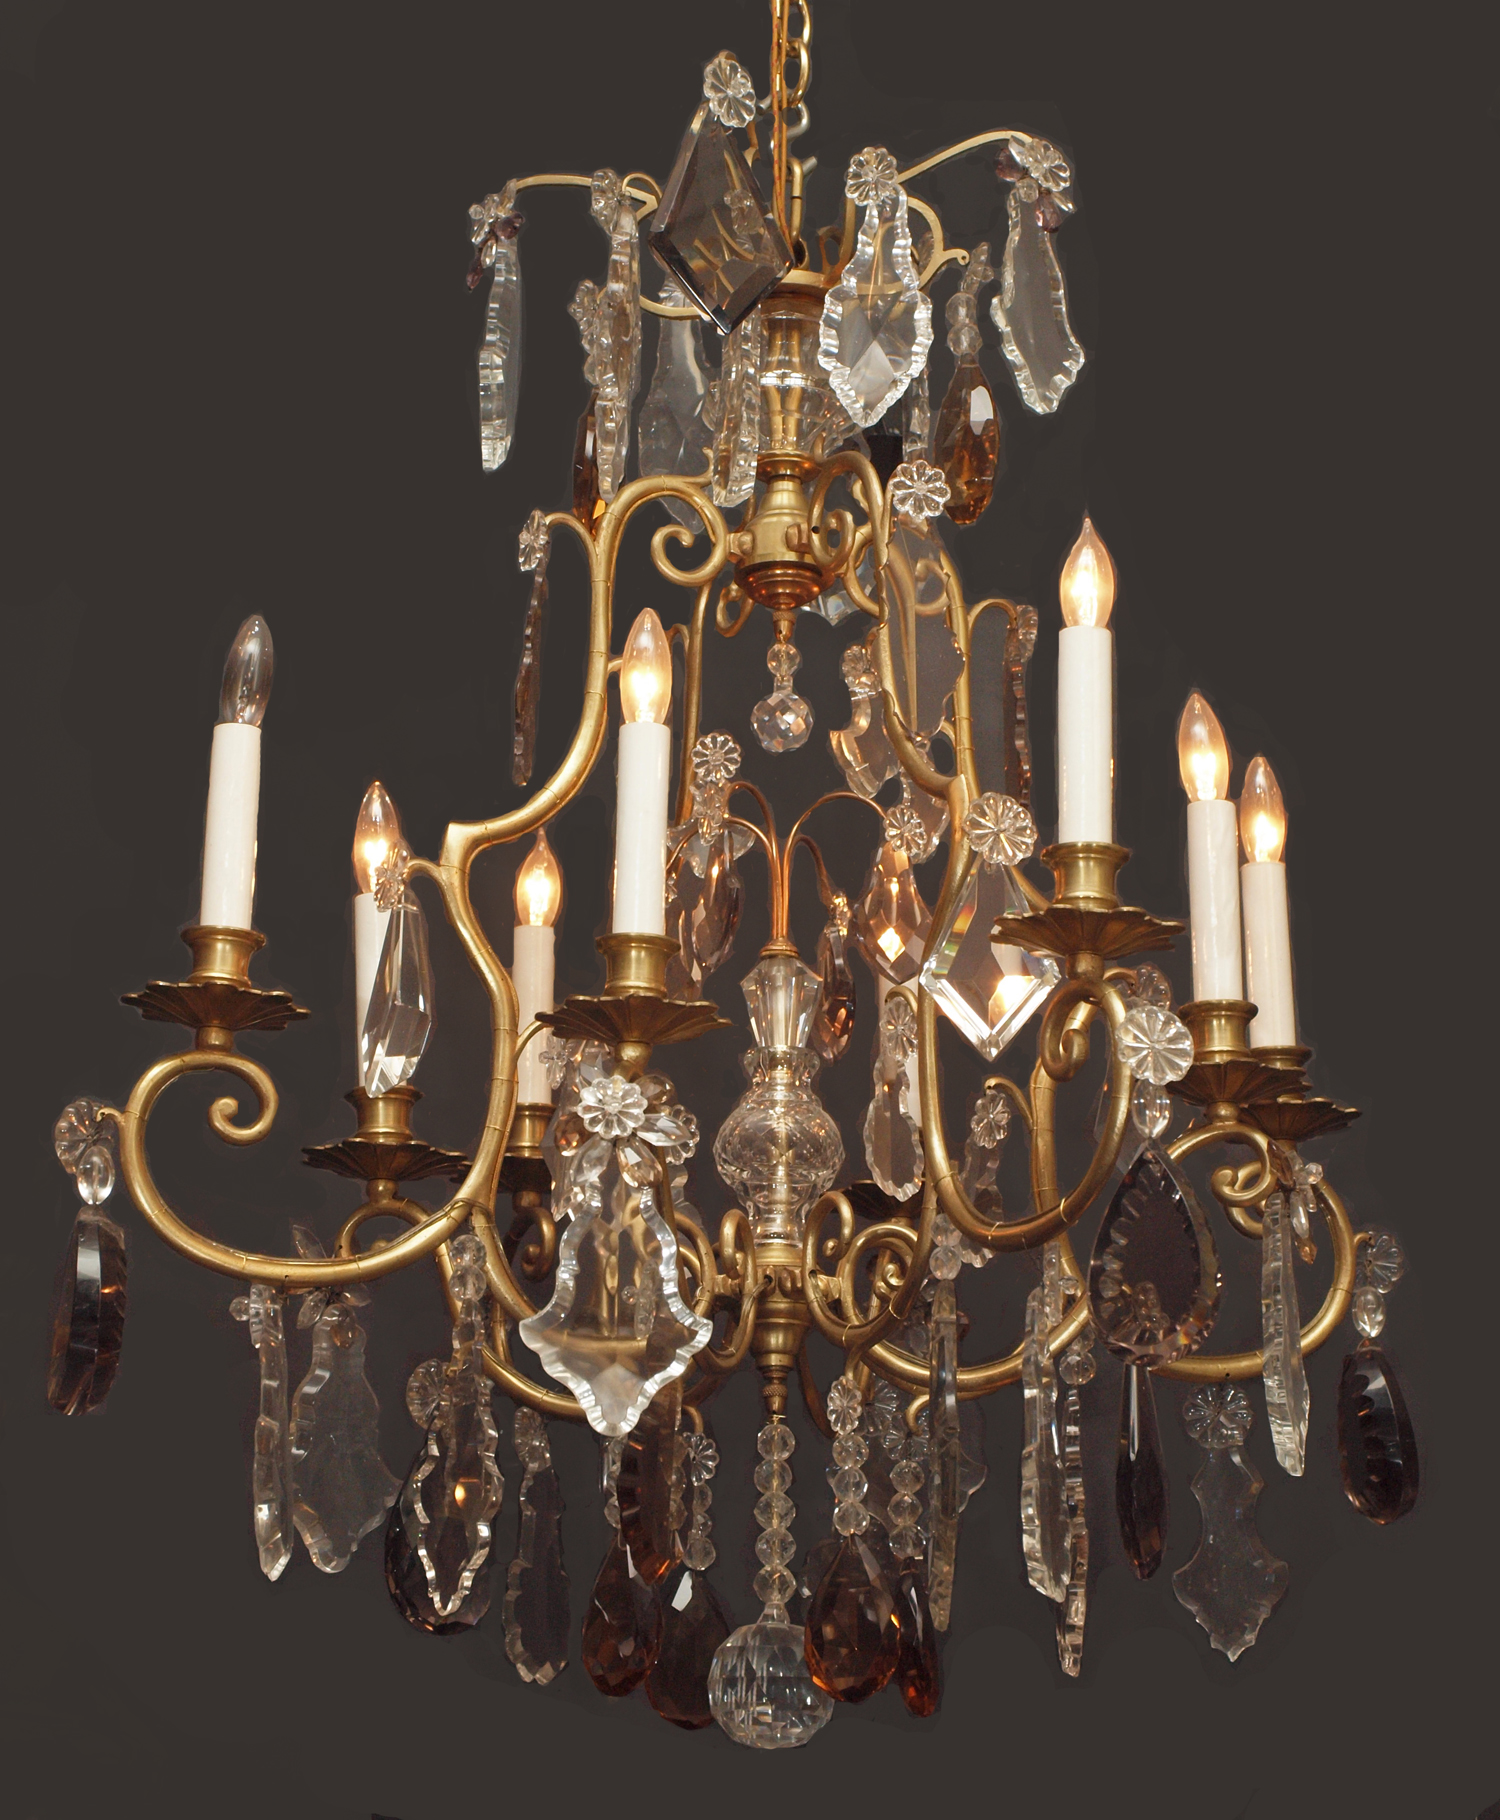 Antique crystal chandelier chc77 for sale classifieds - Chandeliers on sale online ...